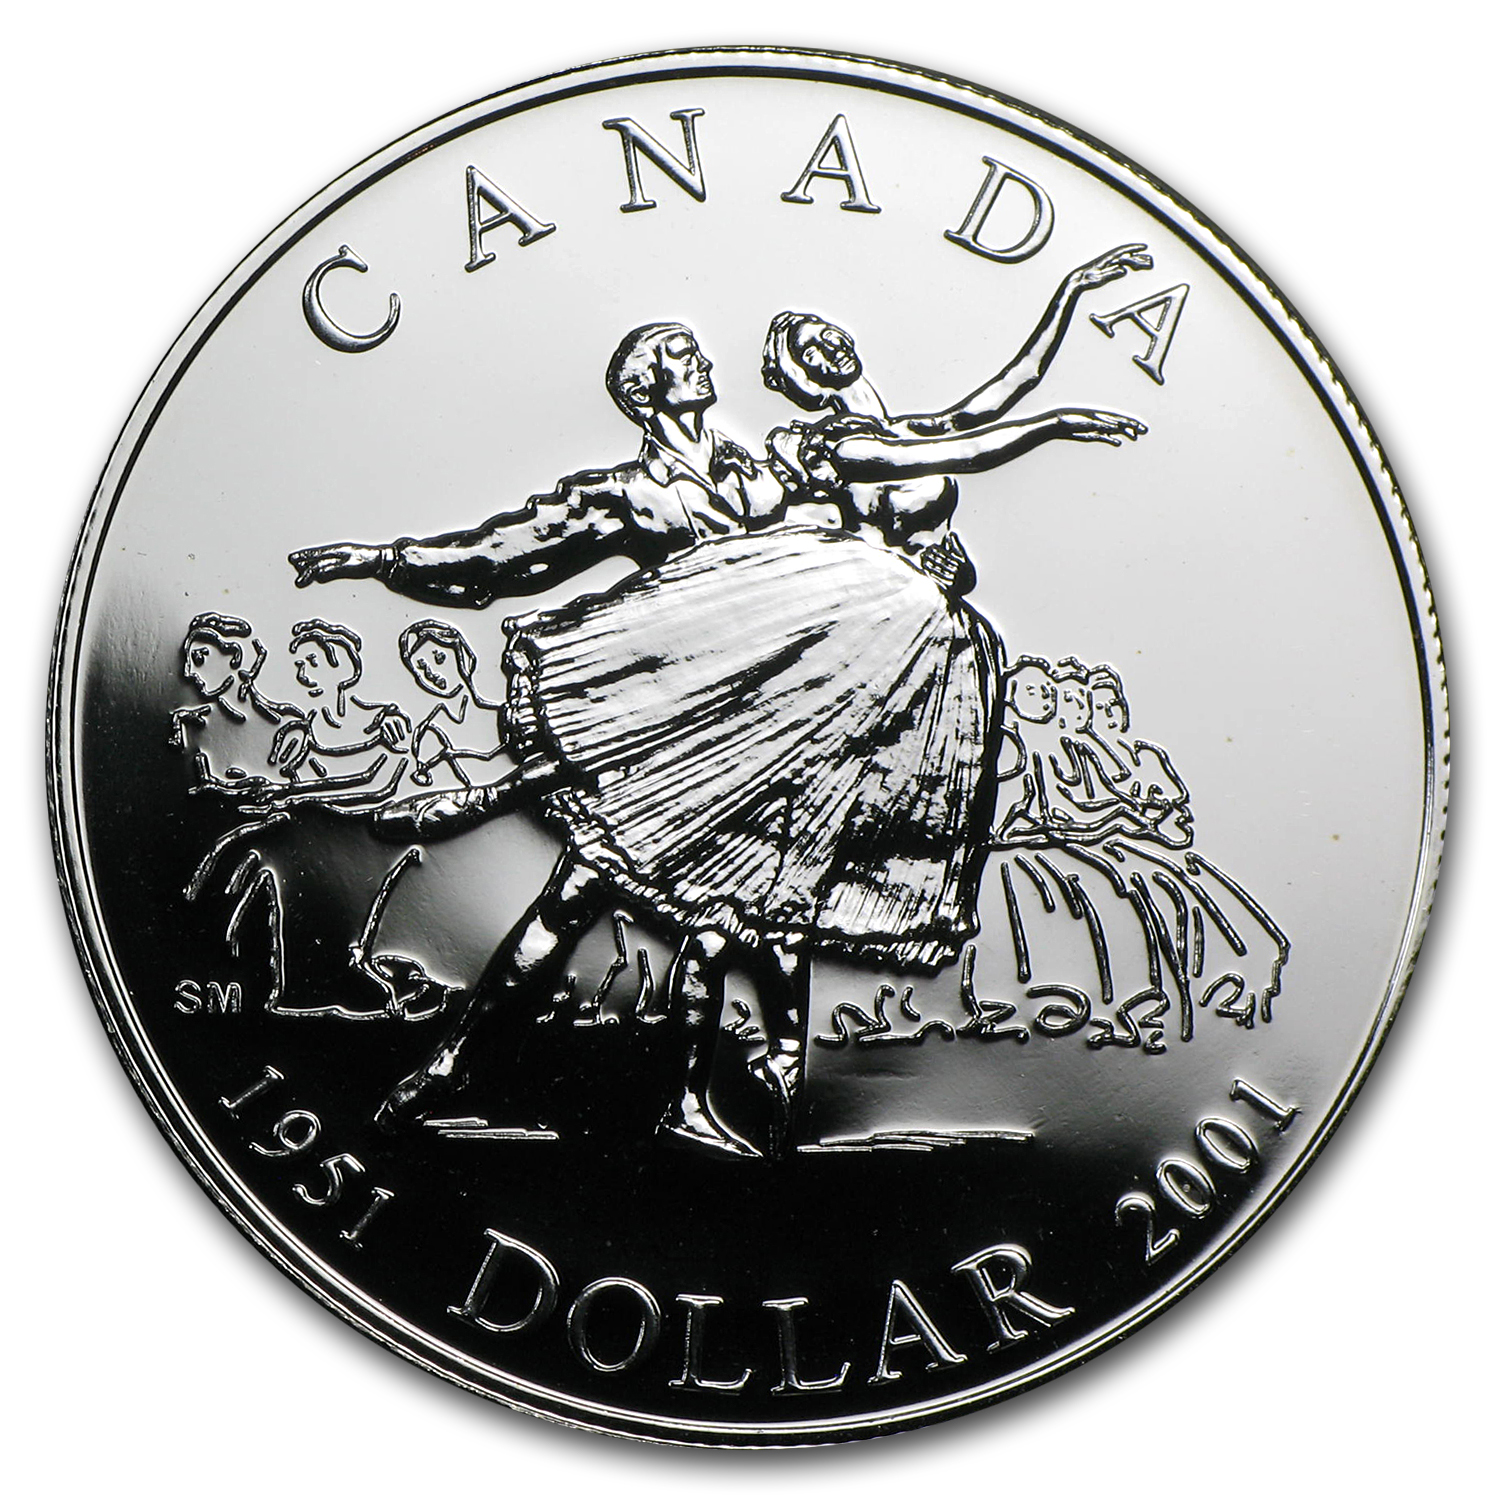 2001 Silver Canadian $1 National Ballet of Canada BU